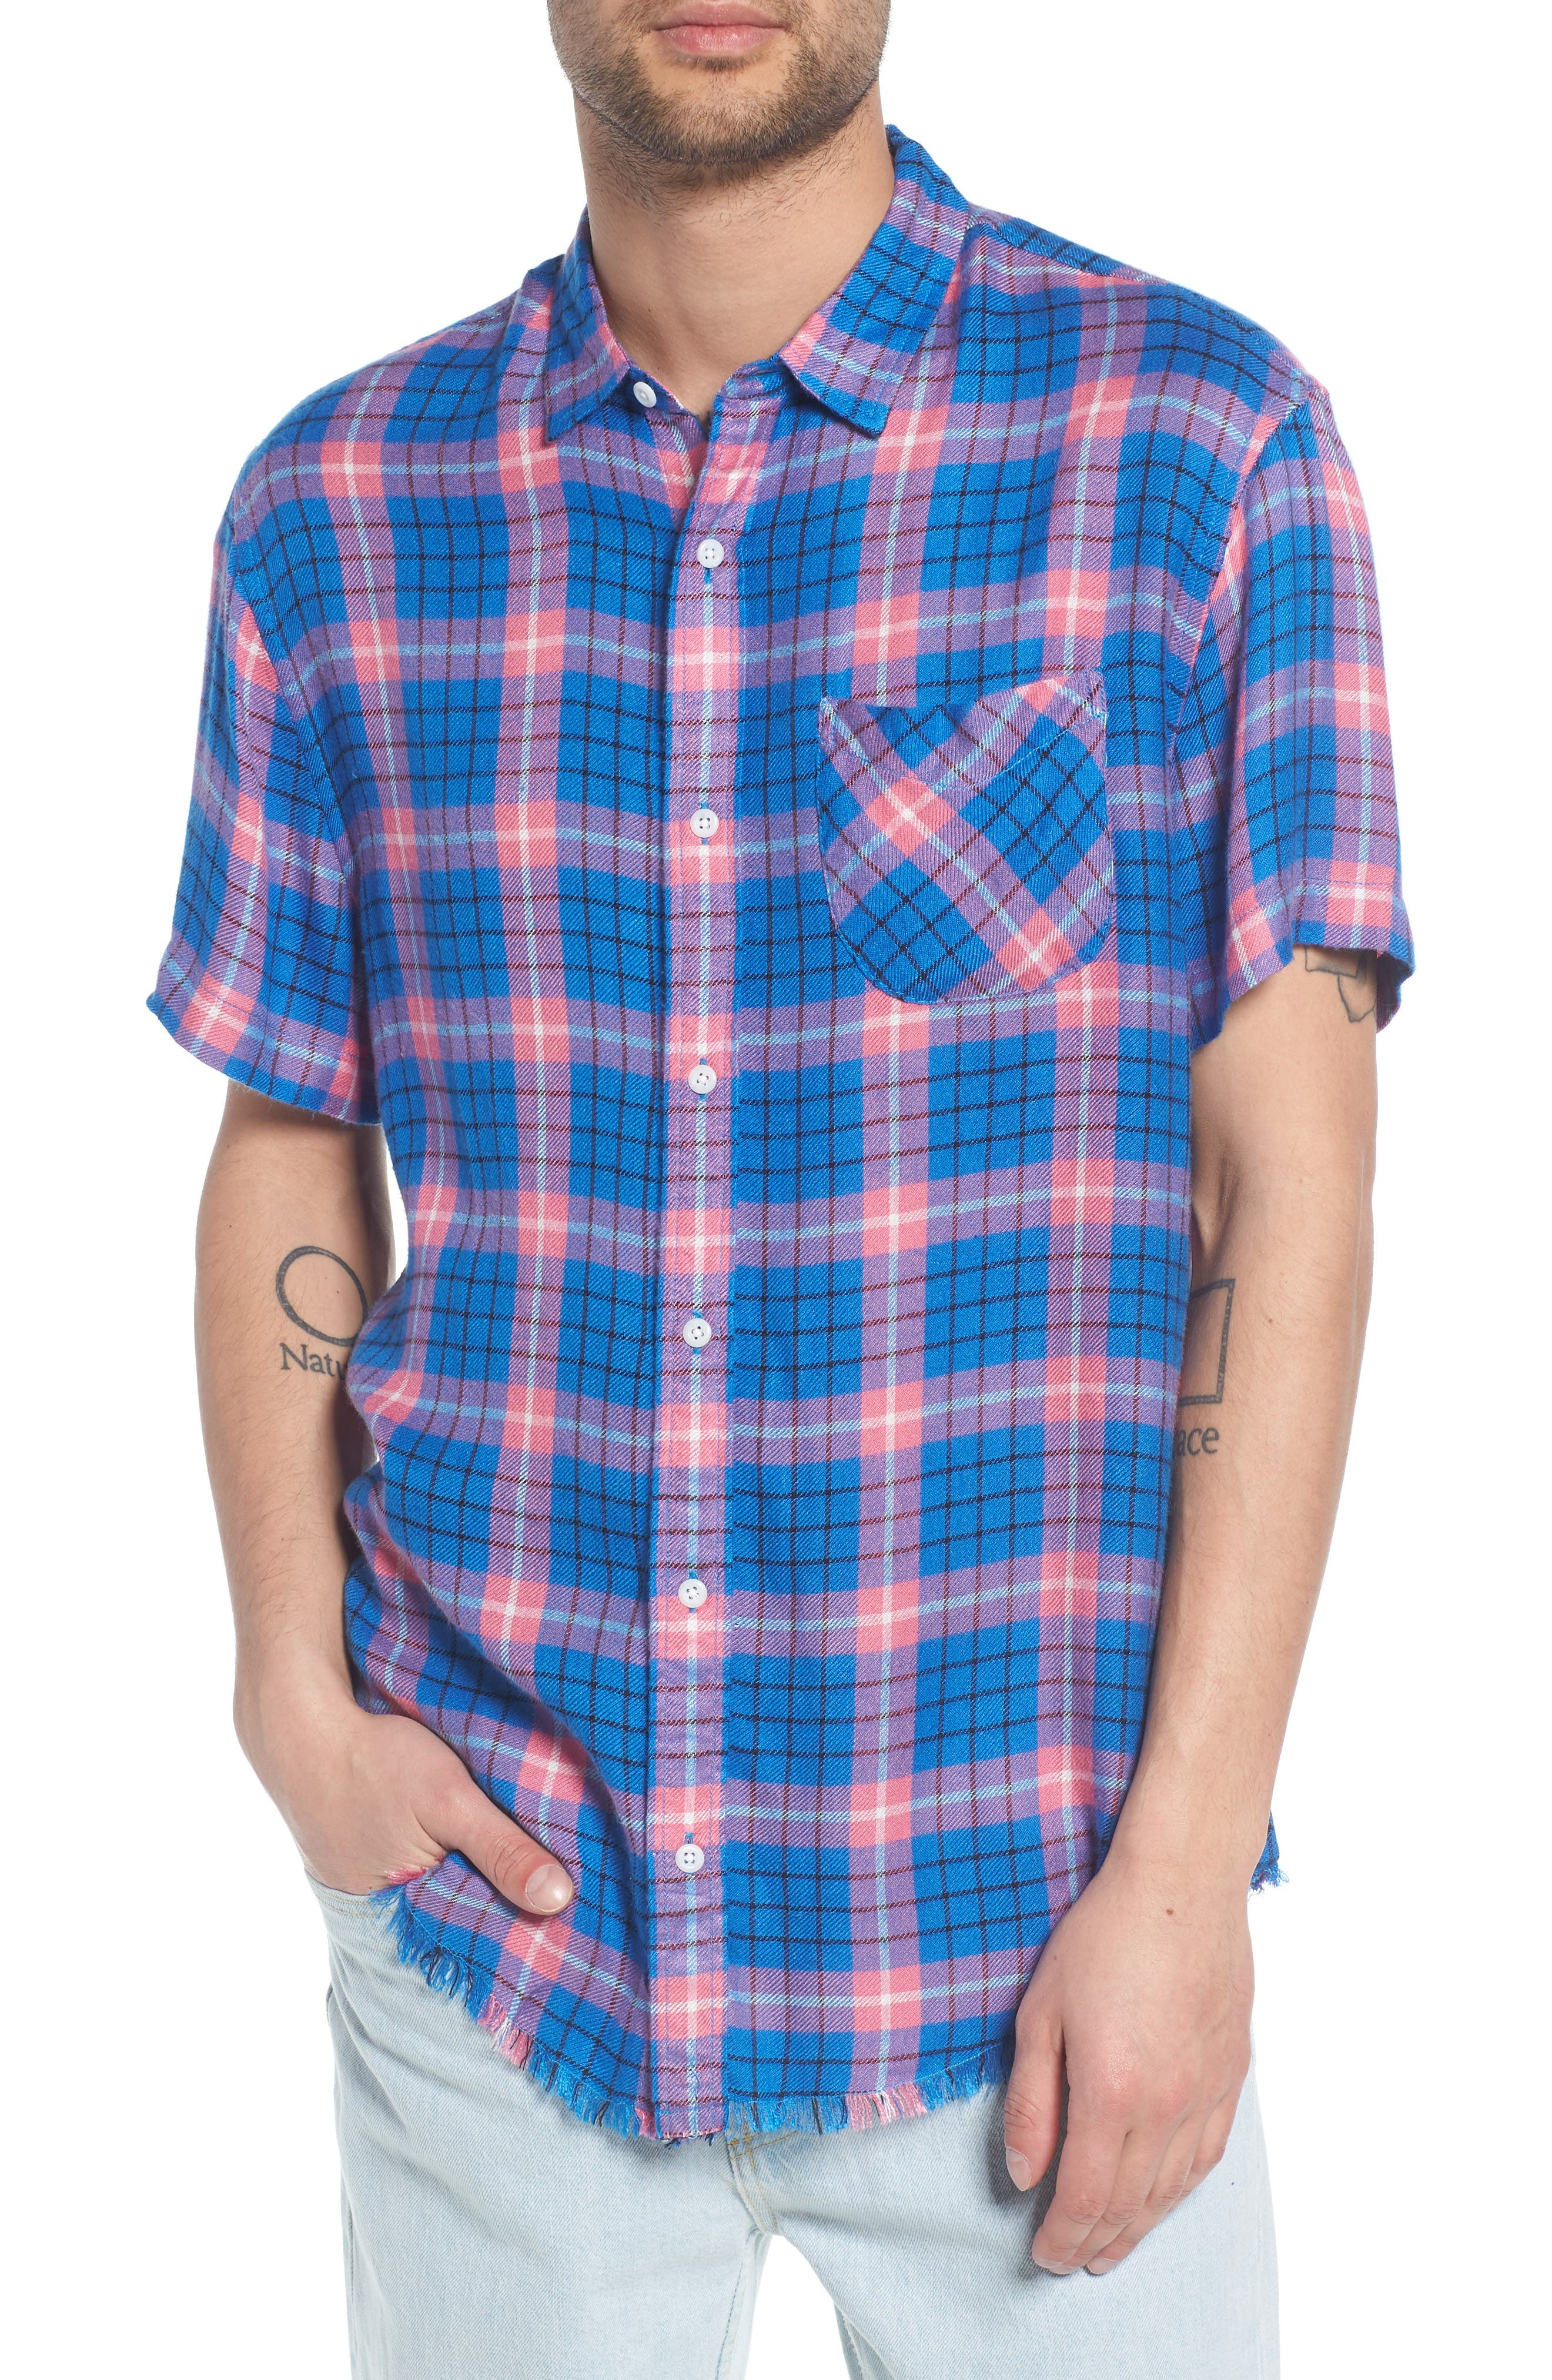 Flannel Woven Shirt,                             Main thumbnail 1, color,                             BLUE CAMP PINK BECK PLAID